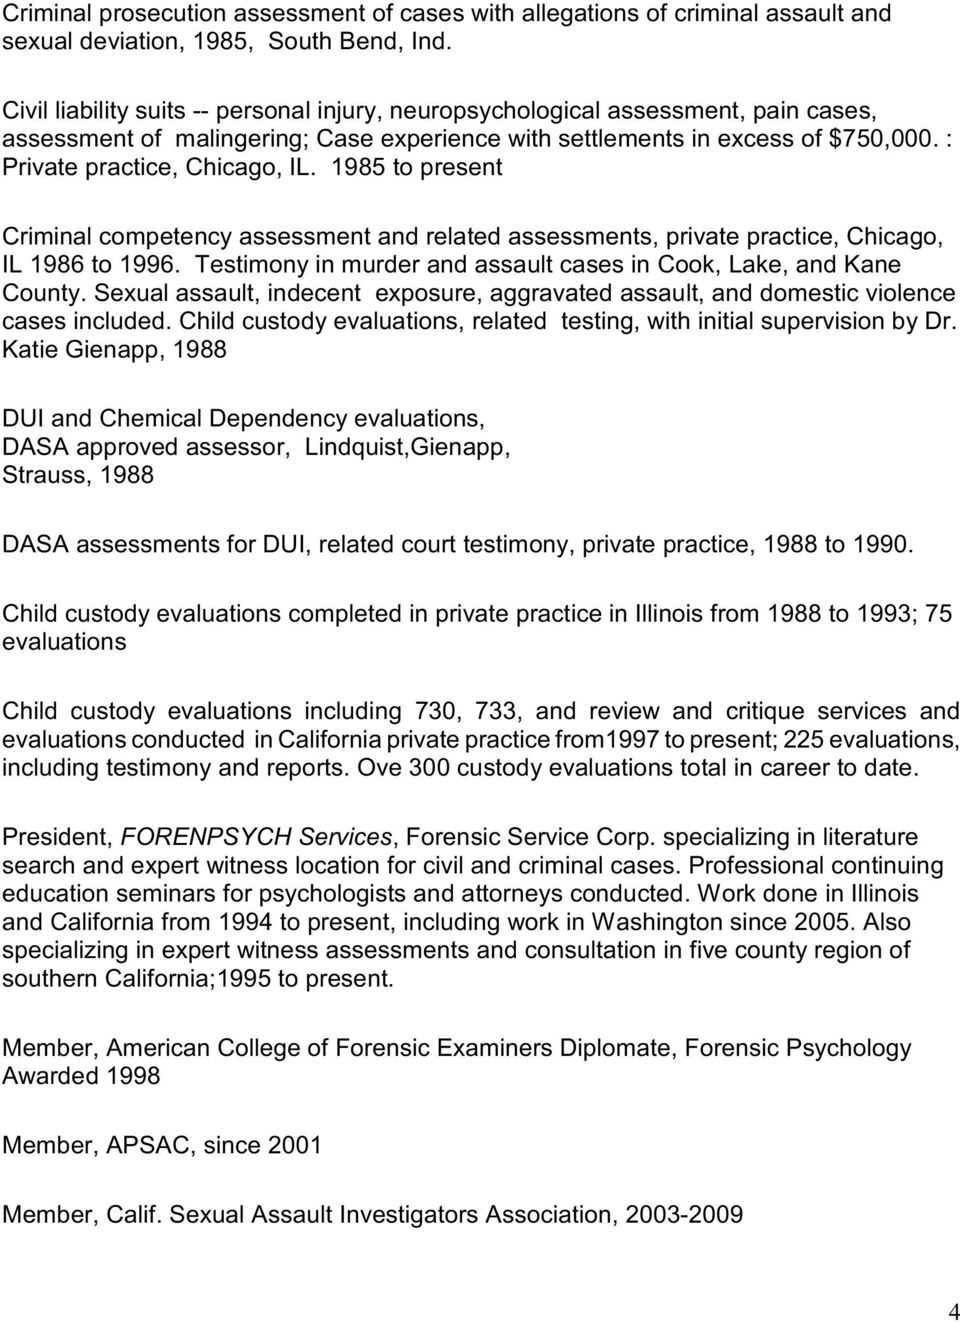 1985 to present Criminal competency assessment and related assessments, private practice, Chicago, IL 1986 to 1996. Testimony in murder and assault cases in Cook, Lake, and Kane County.